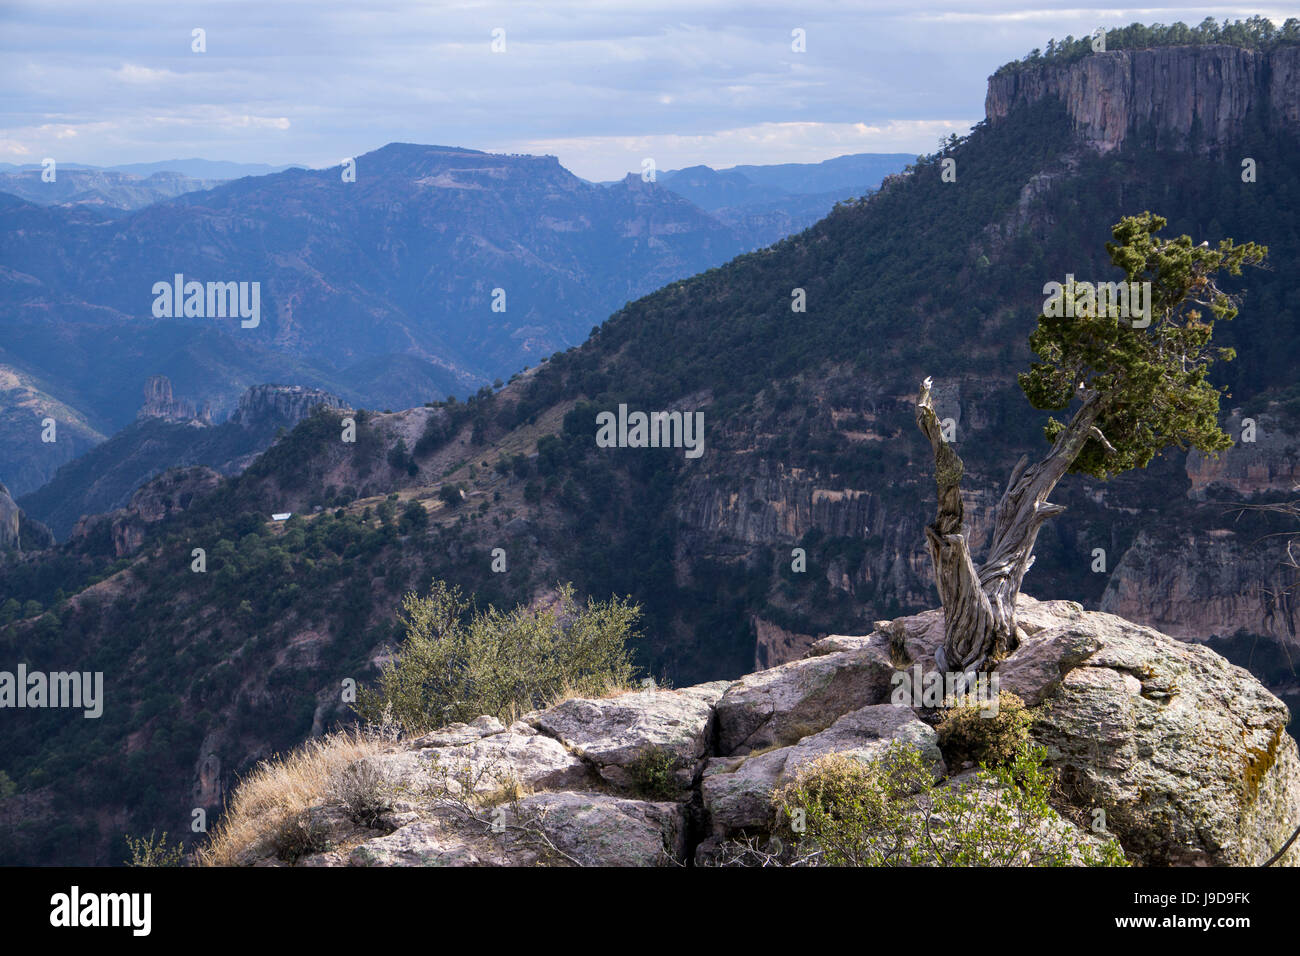 Divisadero, Copper Canyon, larger and deeper than the Grand Canyon, Mexico, North America - Stock Image